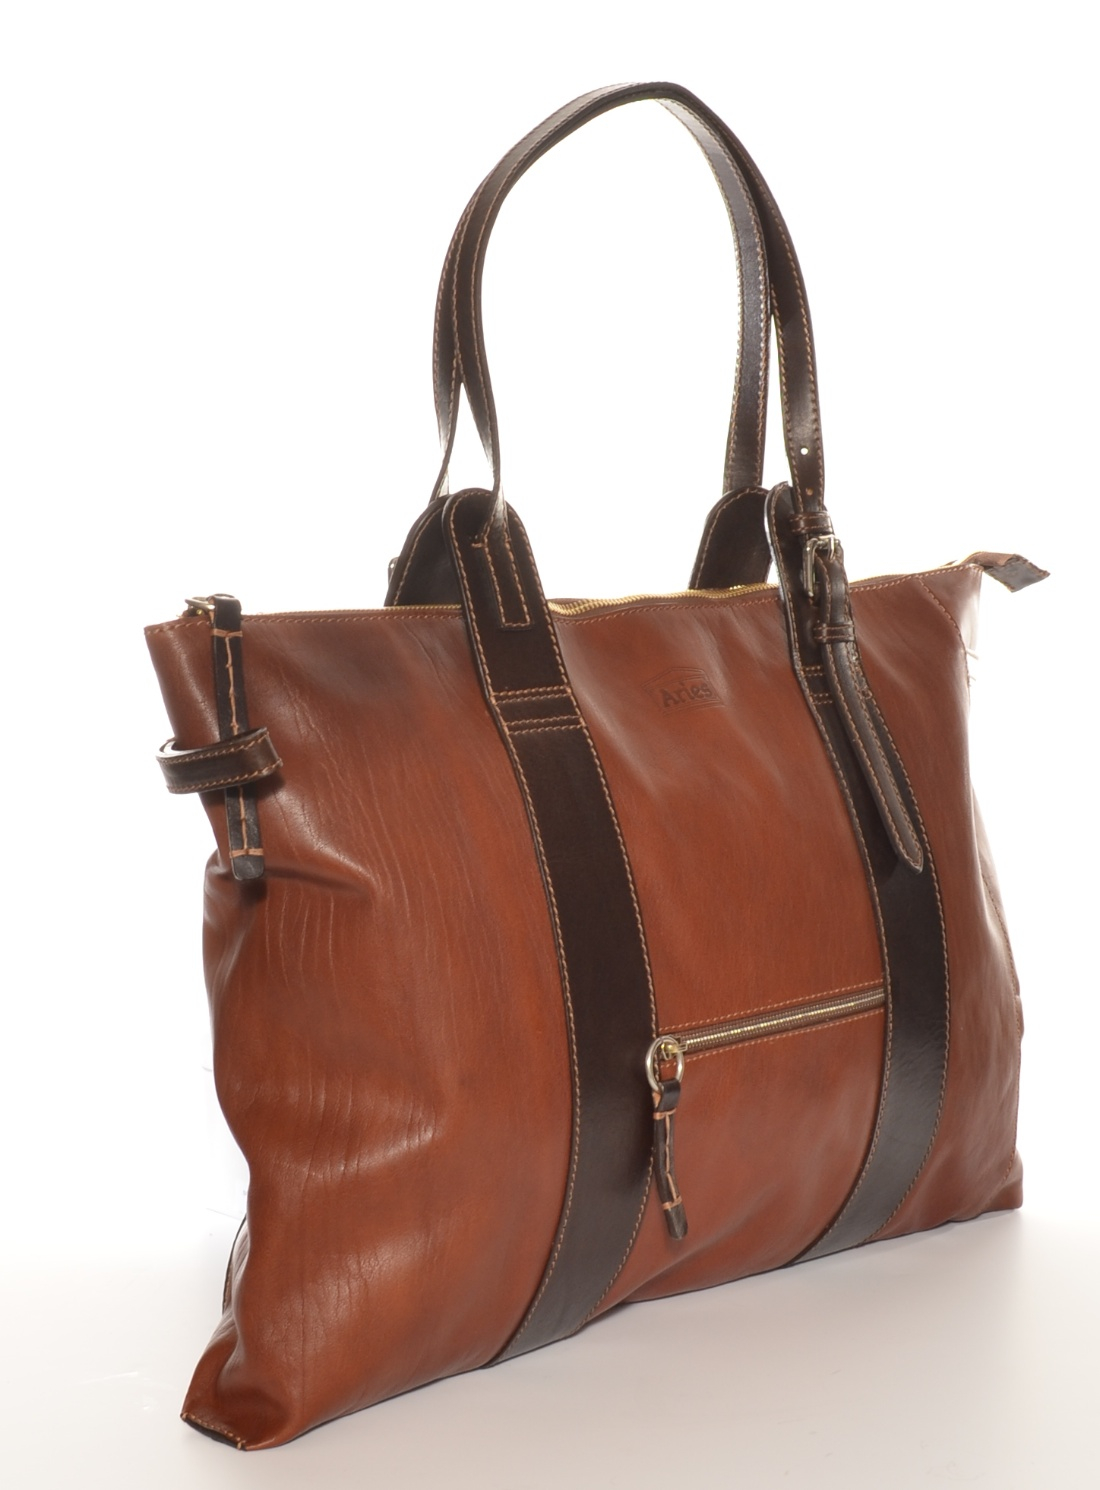 matches. ($ - $) Find great deals on the latest styles of Big brown leather purses. Compare prices & save money on Handbags & Totes.